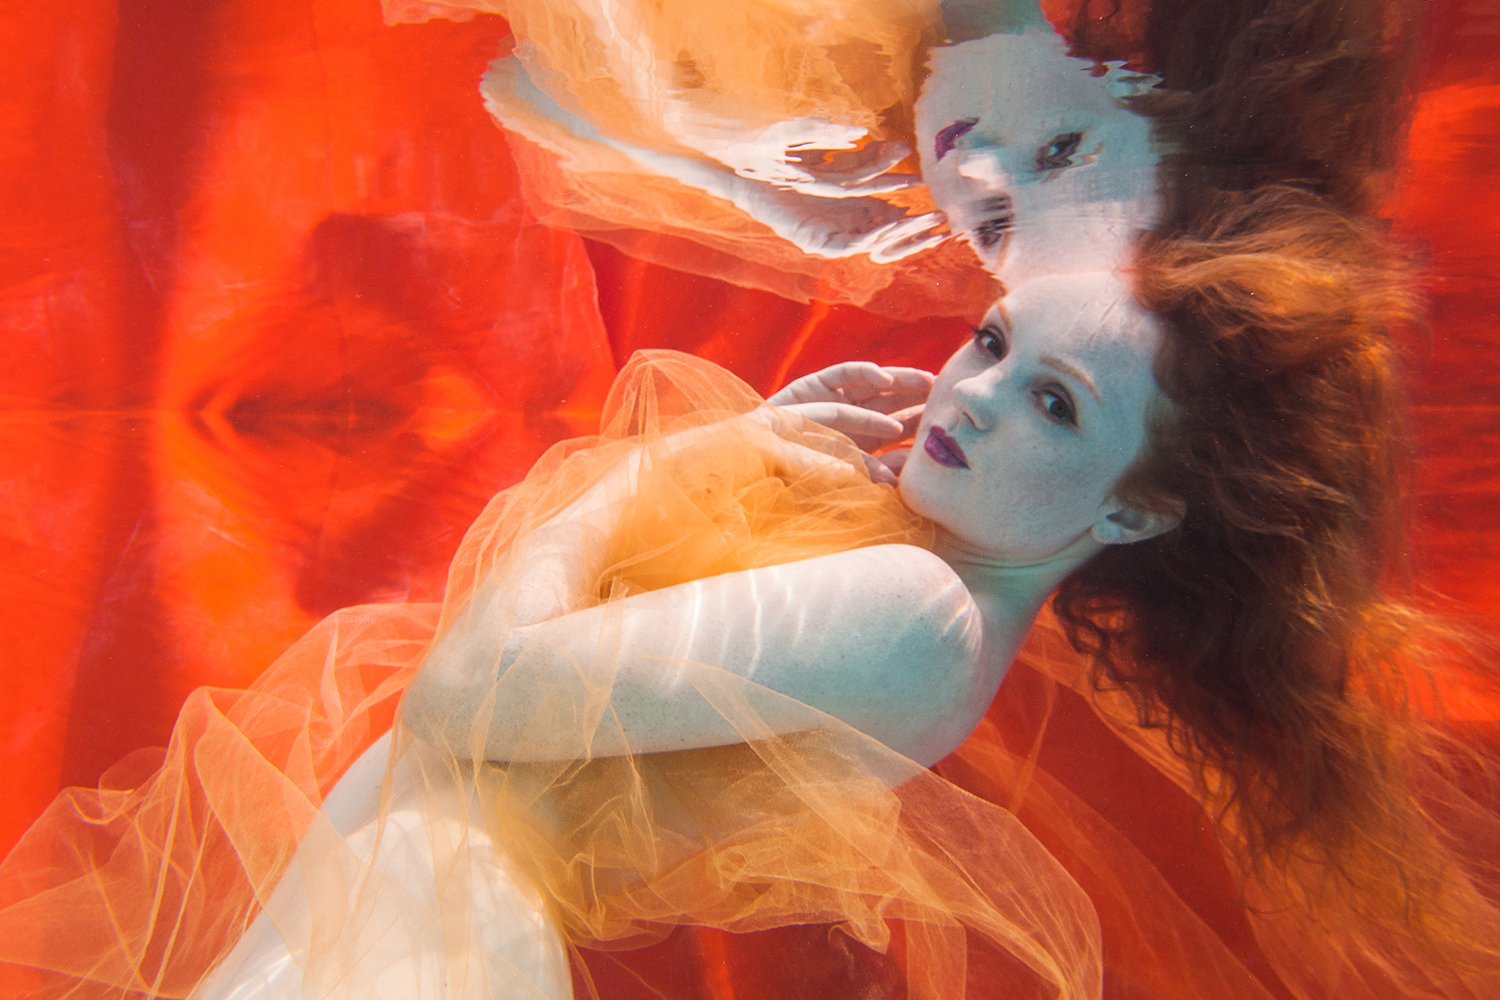 vory Flame redhead model underwater by photographer Chris Meredith